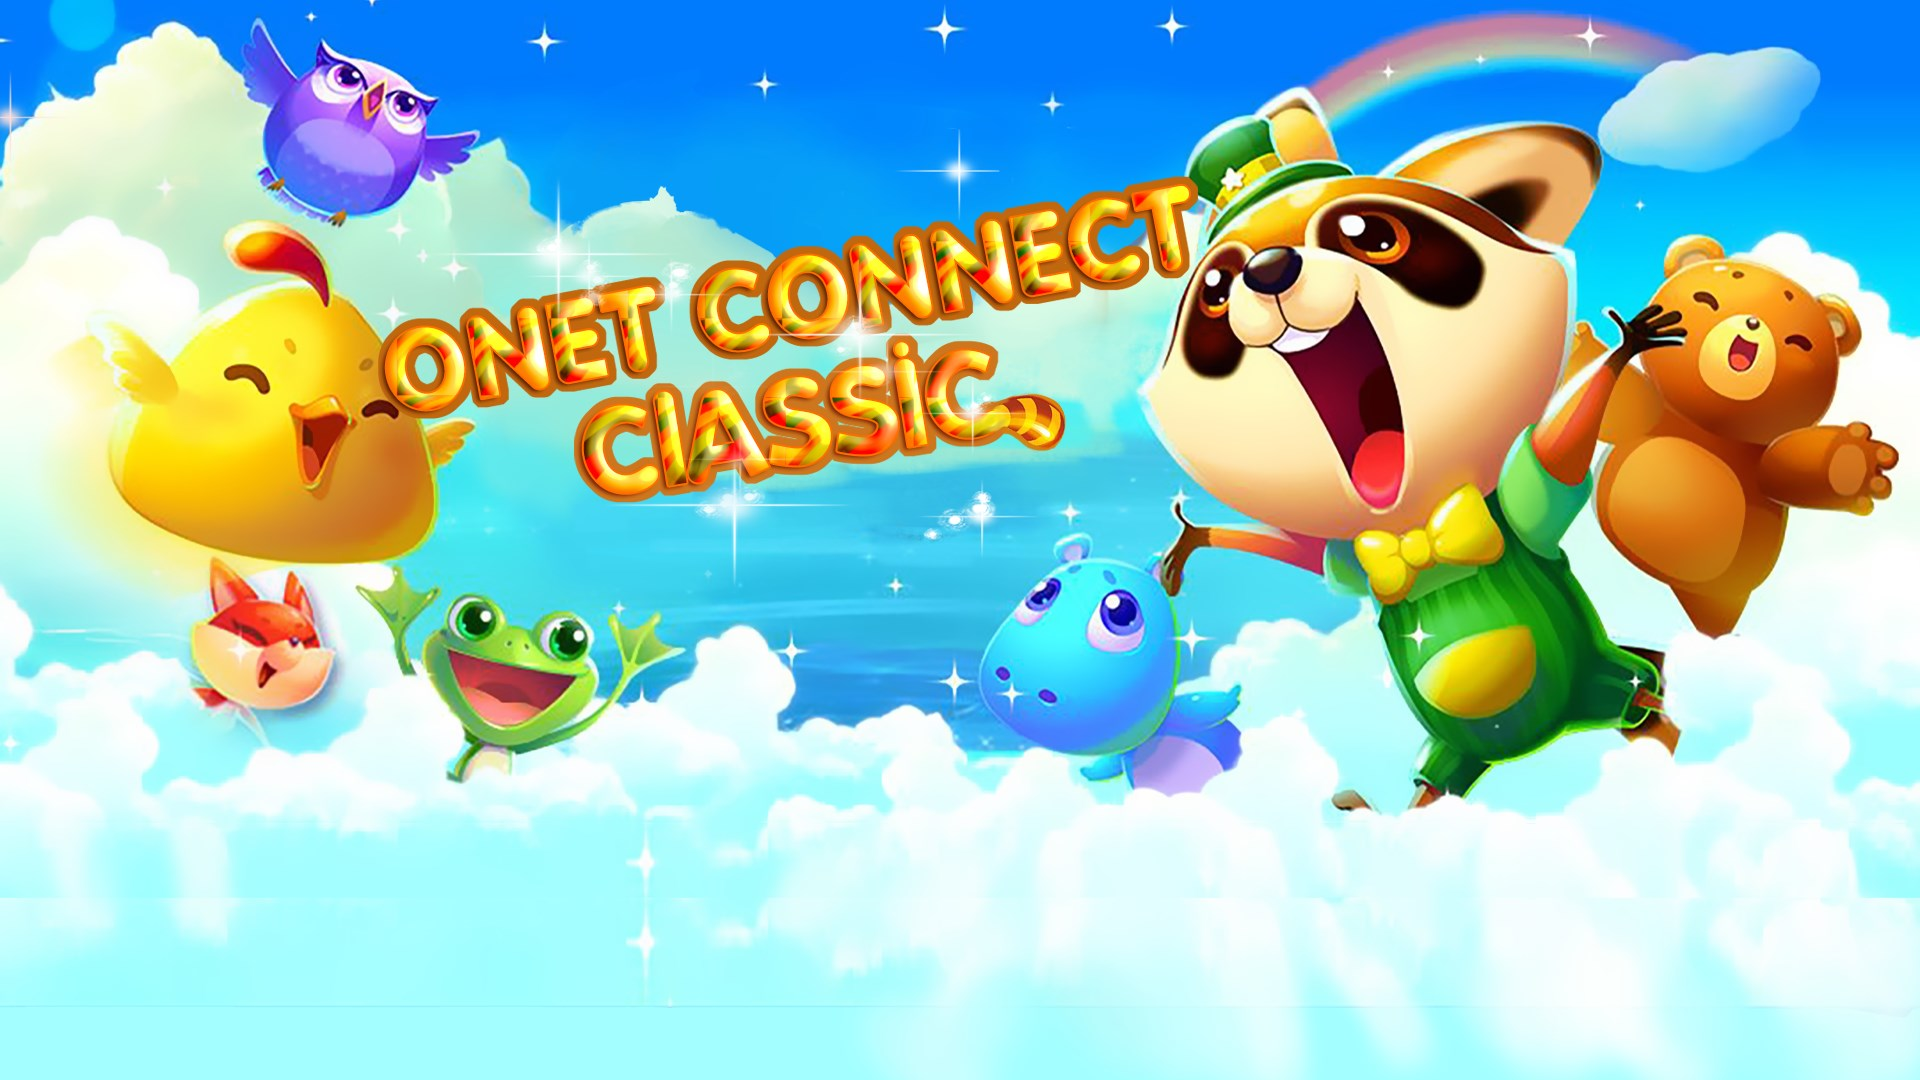 Get Onet Connect Classic: Free Style Games - Microsoft Store